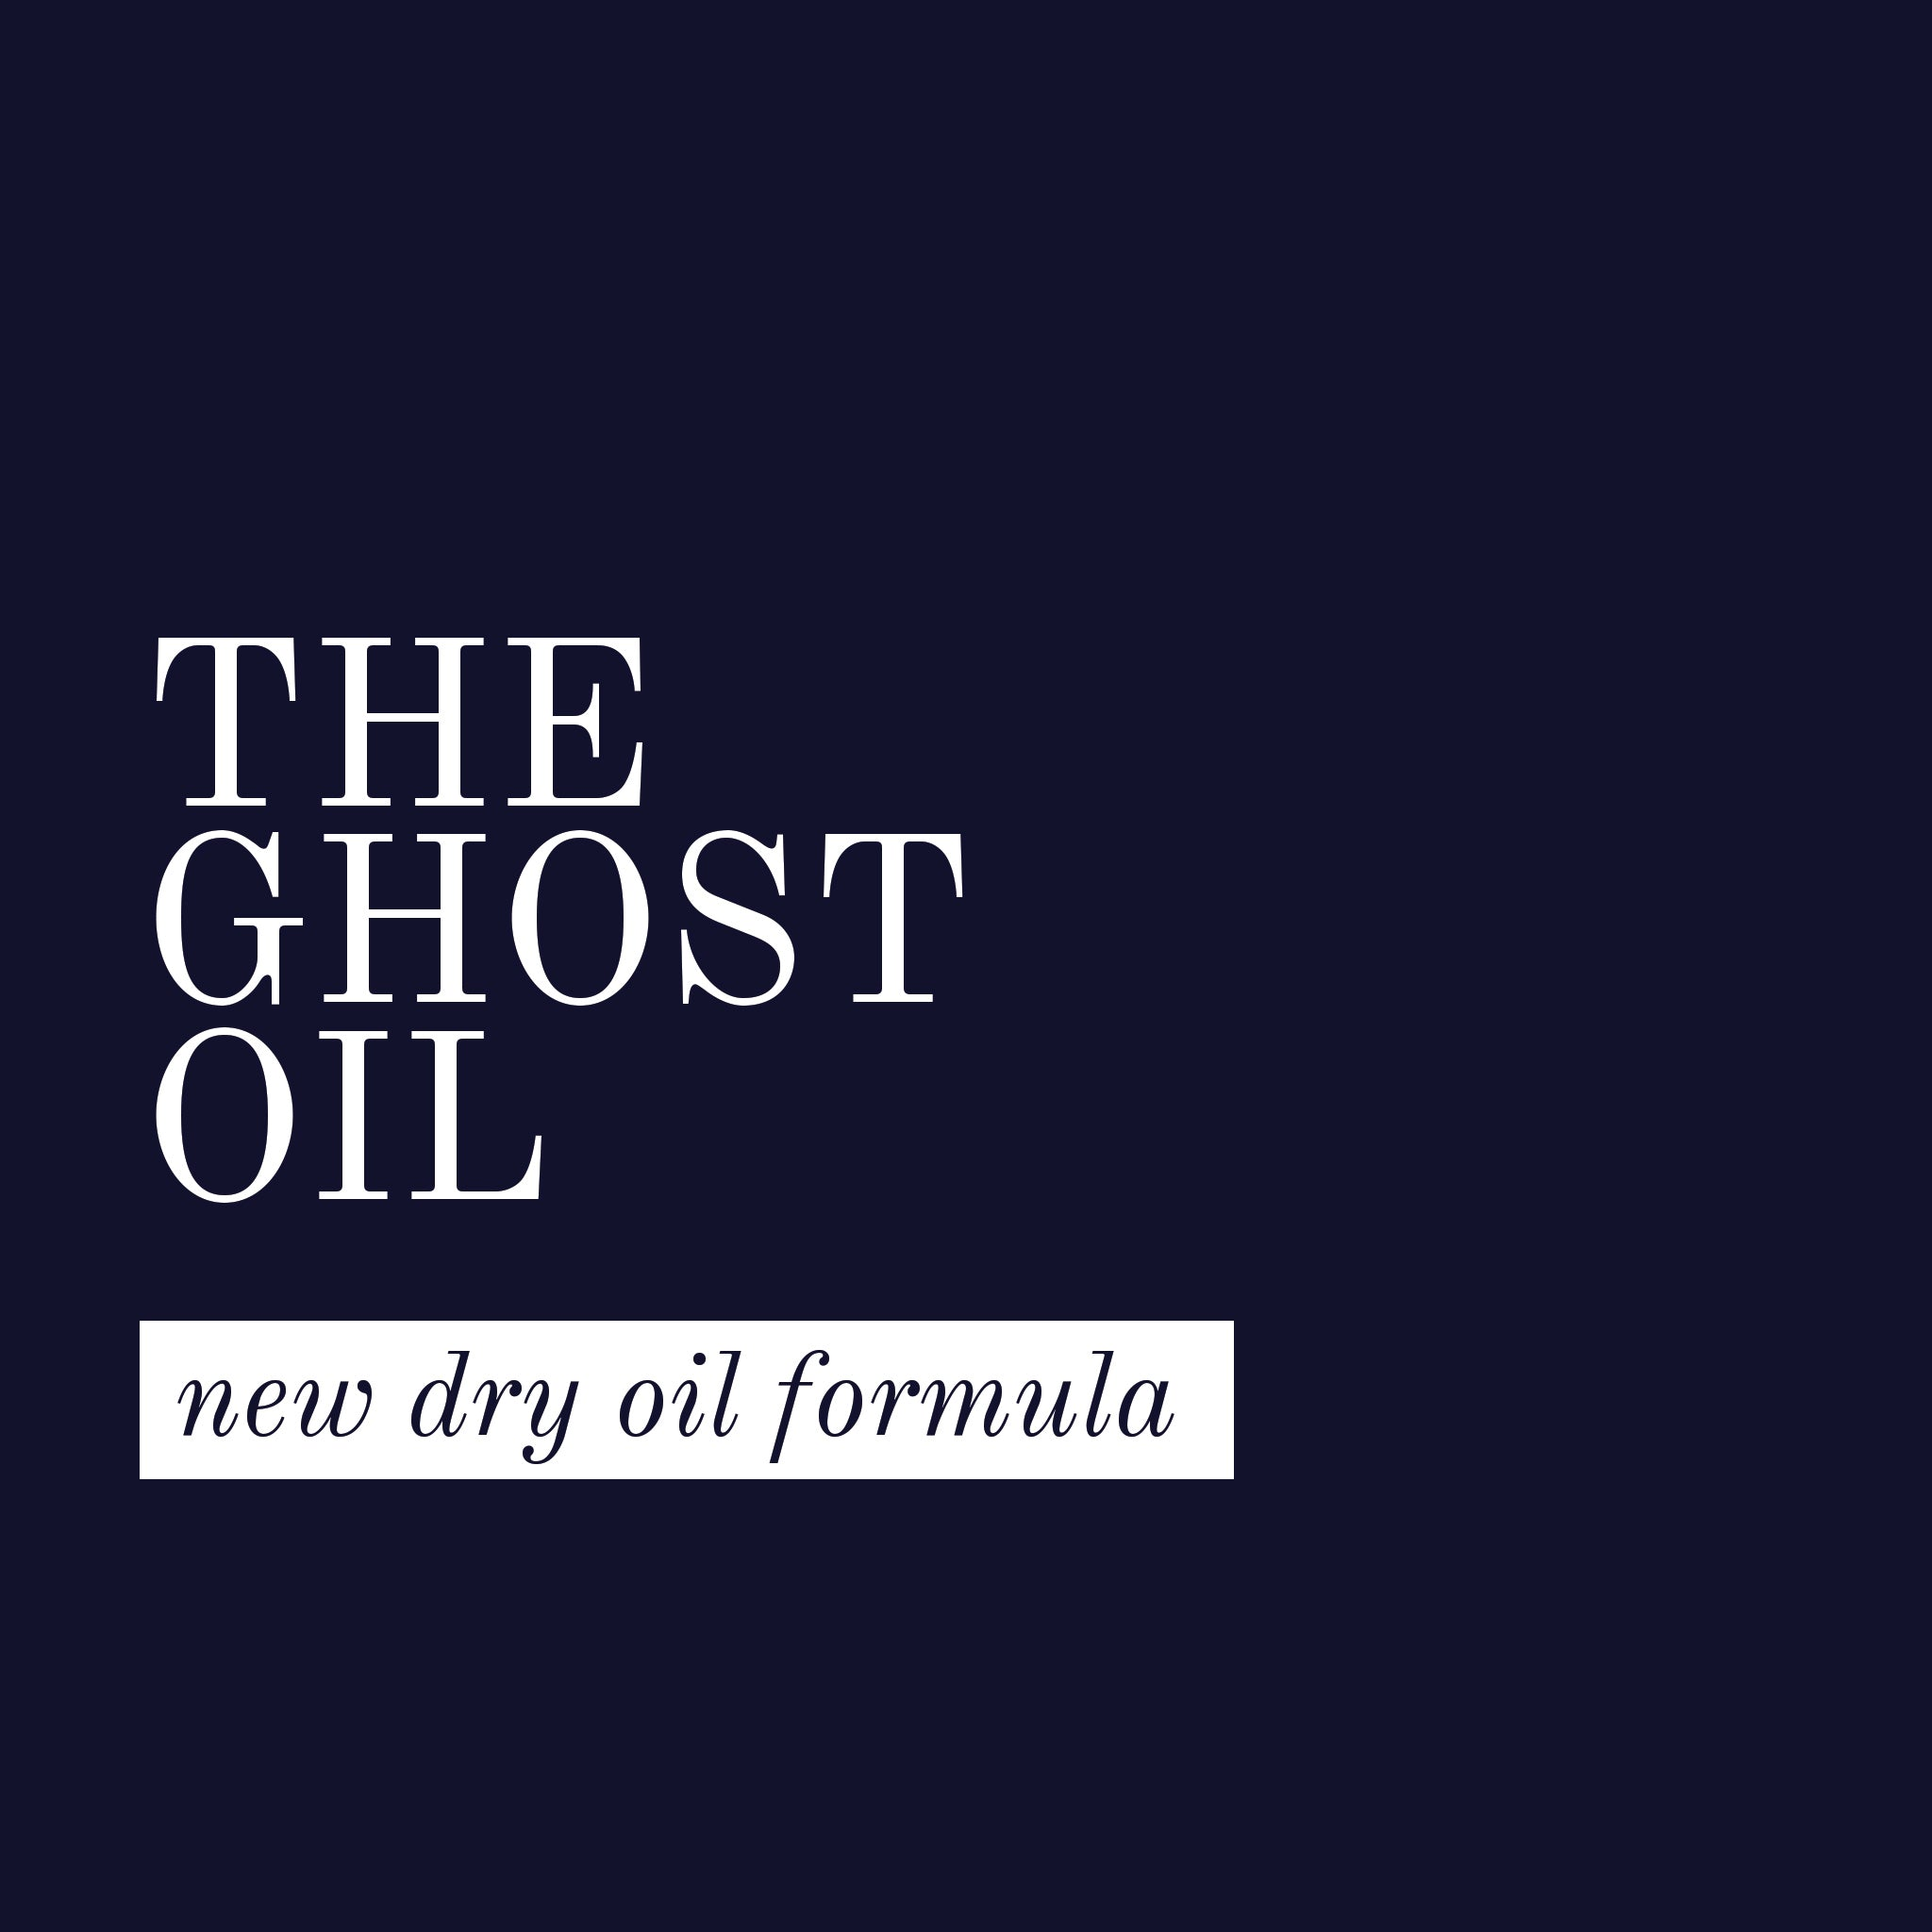 The Ghost oil